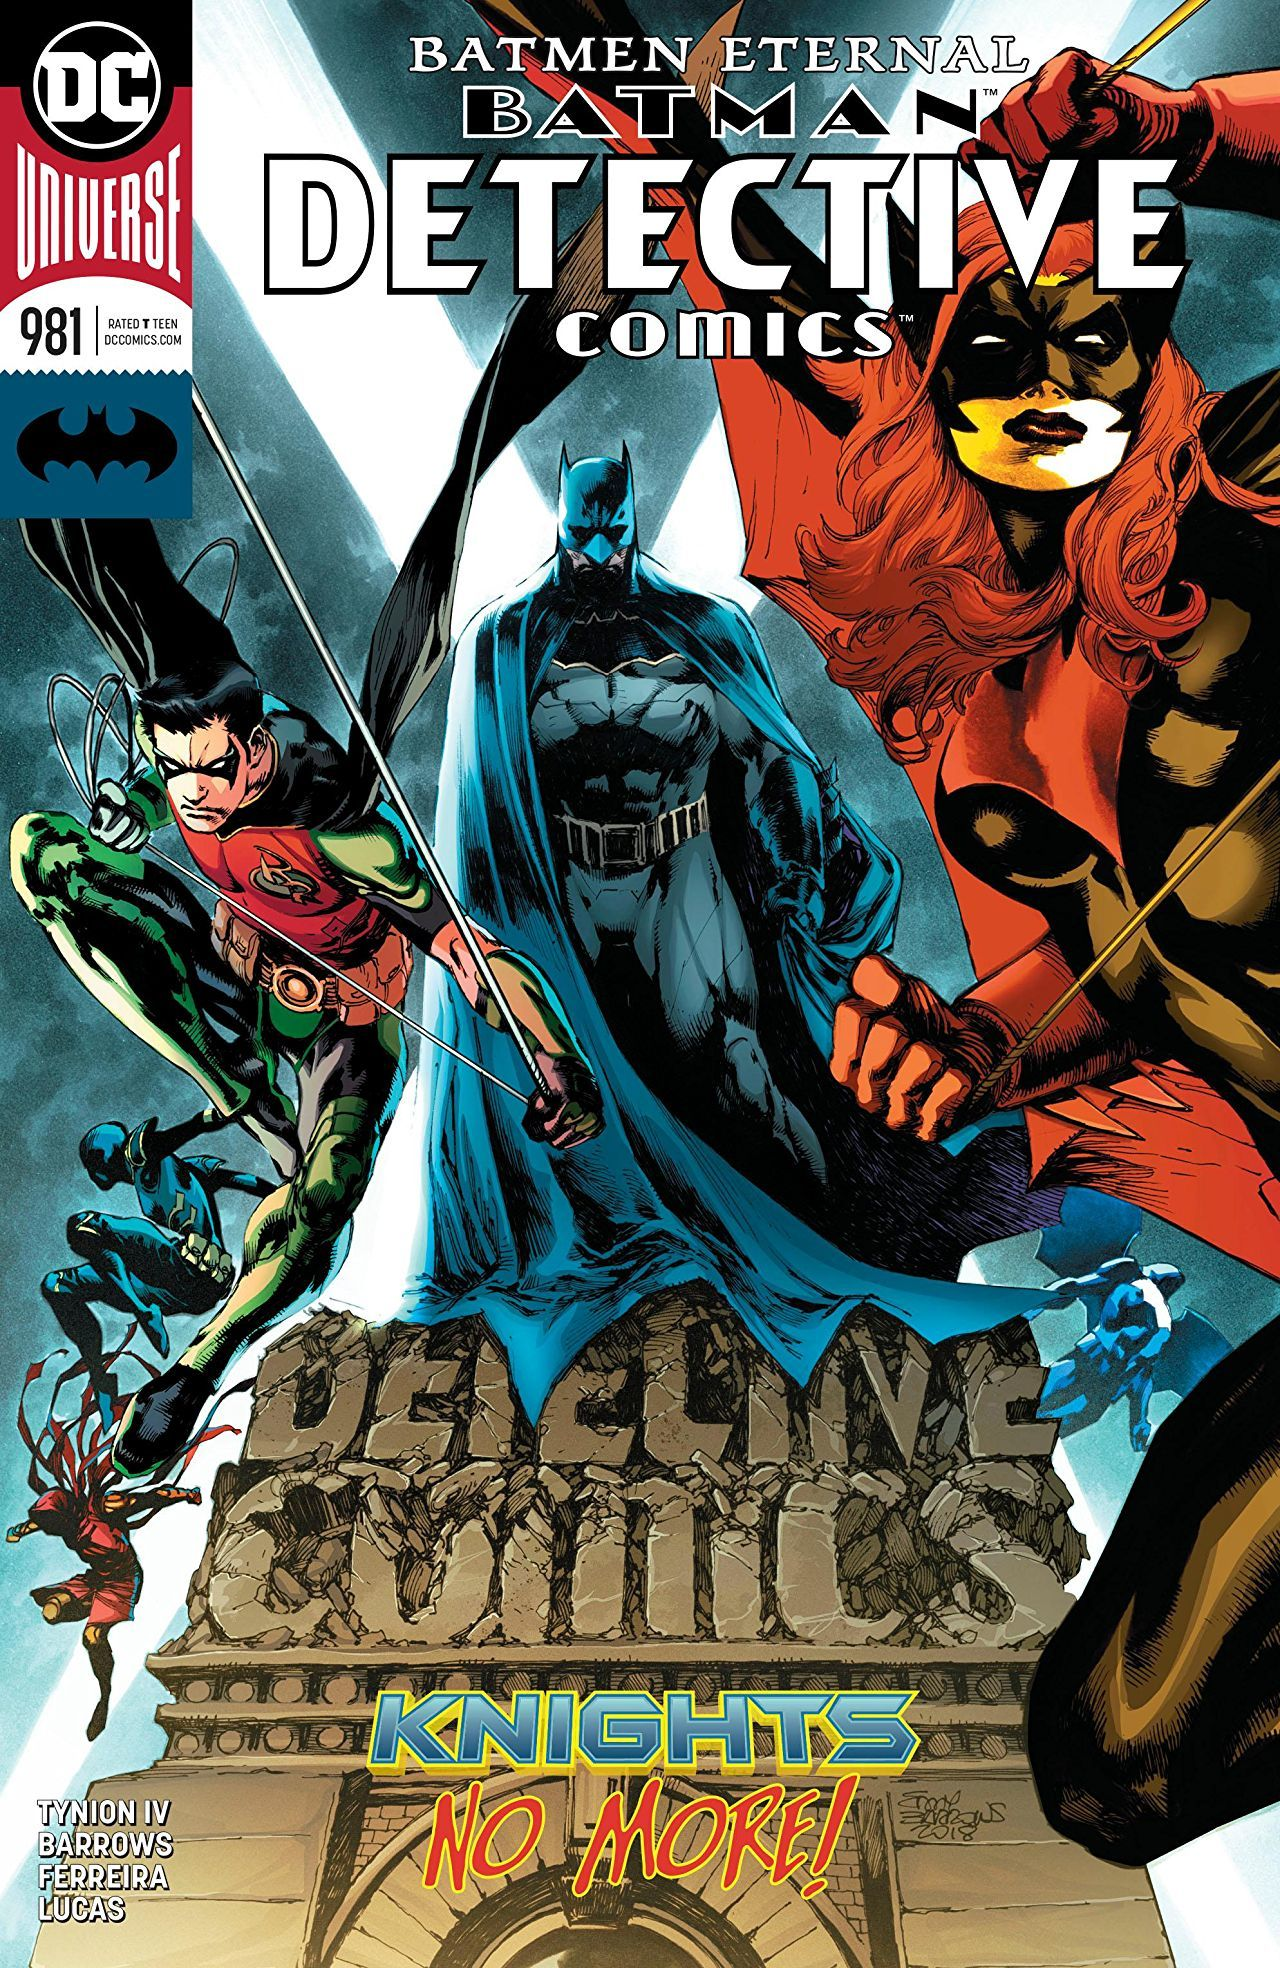 Batman: Detective Comics #981 cover by Eddy Barrows, Eber Ferreira, and Adriano Lucas